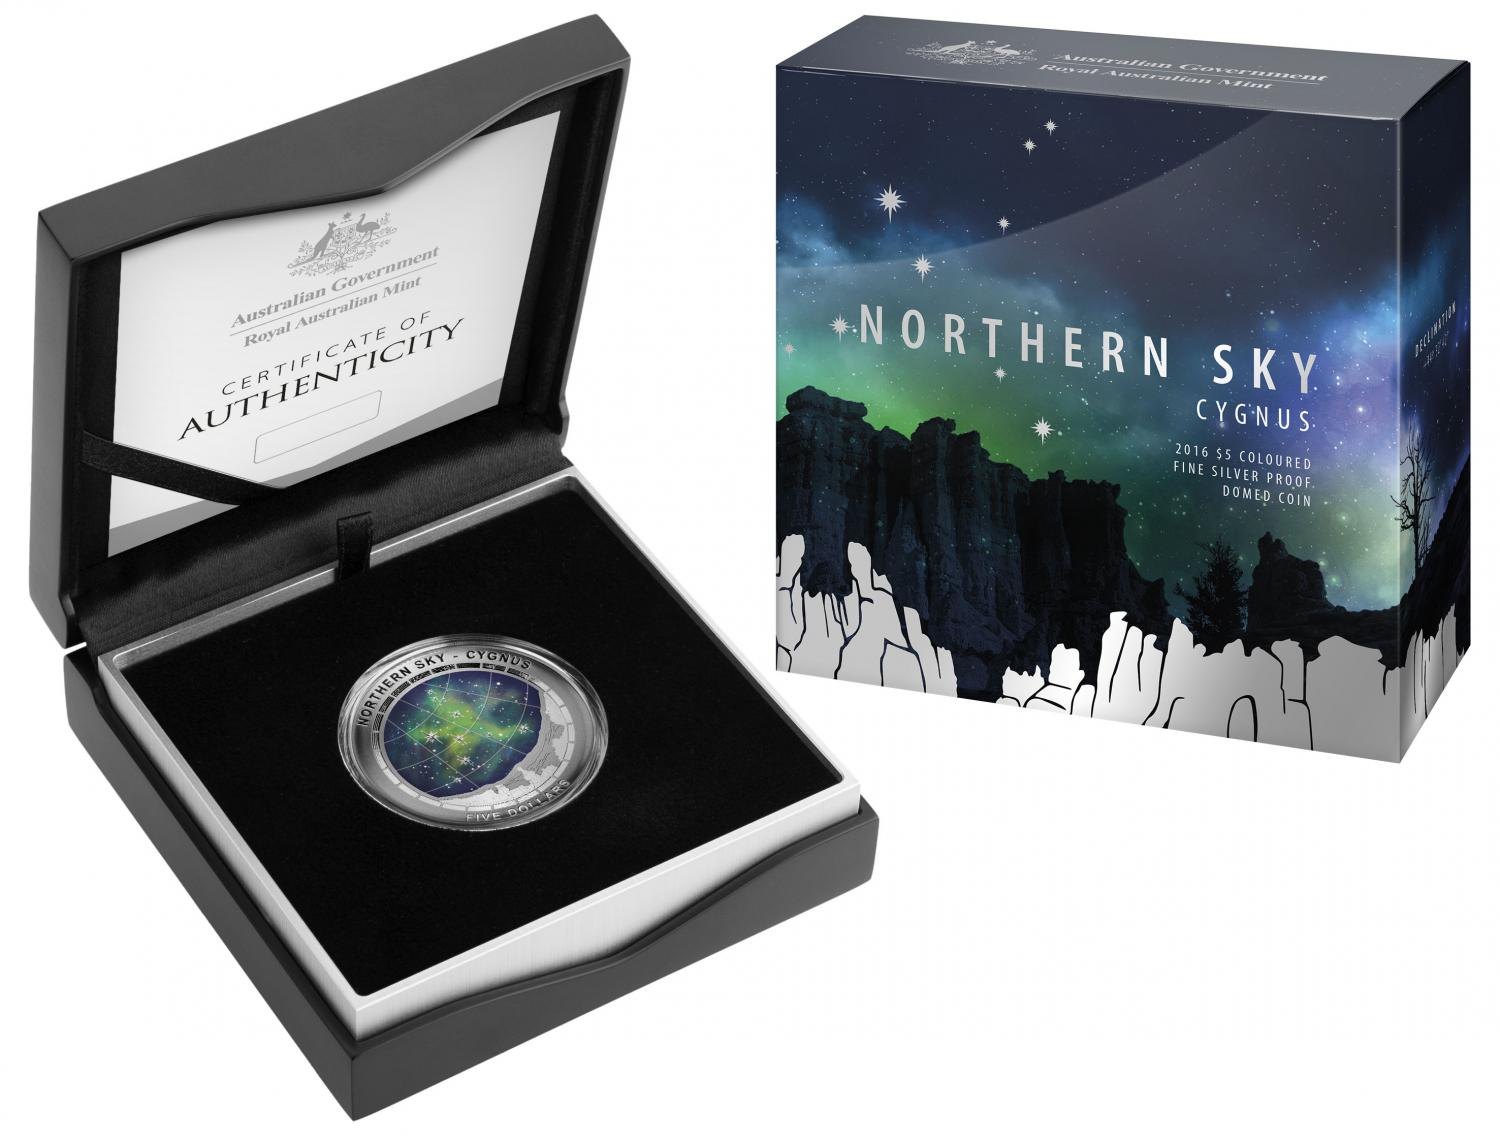 Thumbnail for 2016 Northern Sky Cygnus Silver Proof Domed Coin